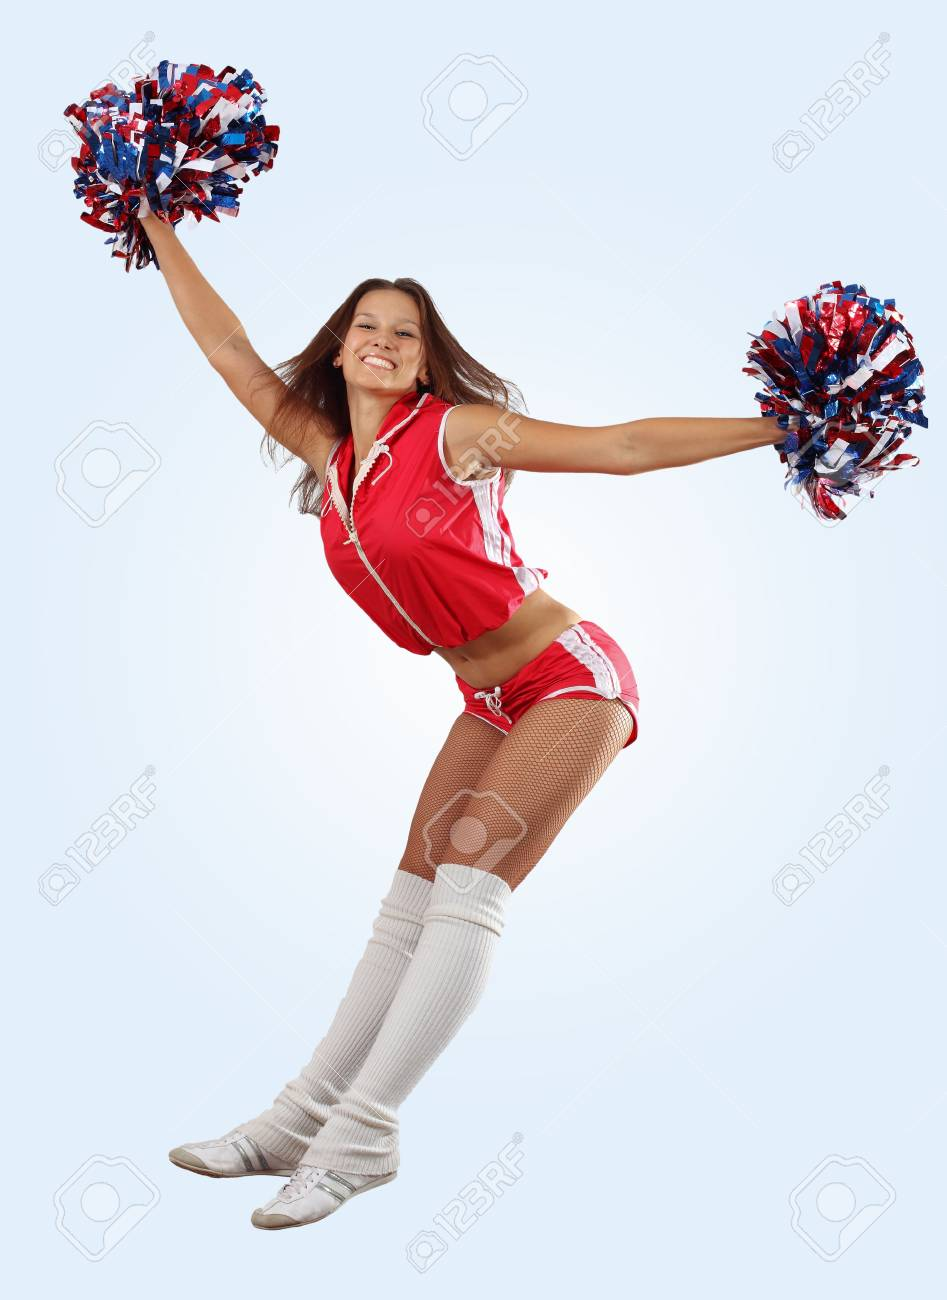 Uniformed cheerleader jumps high in the air 